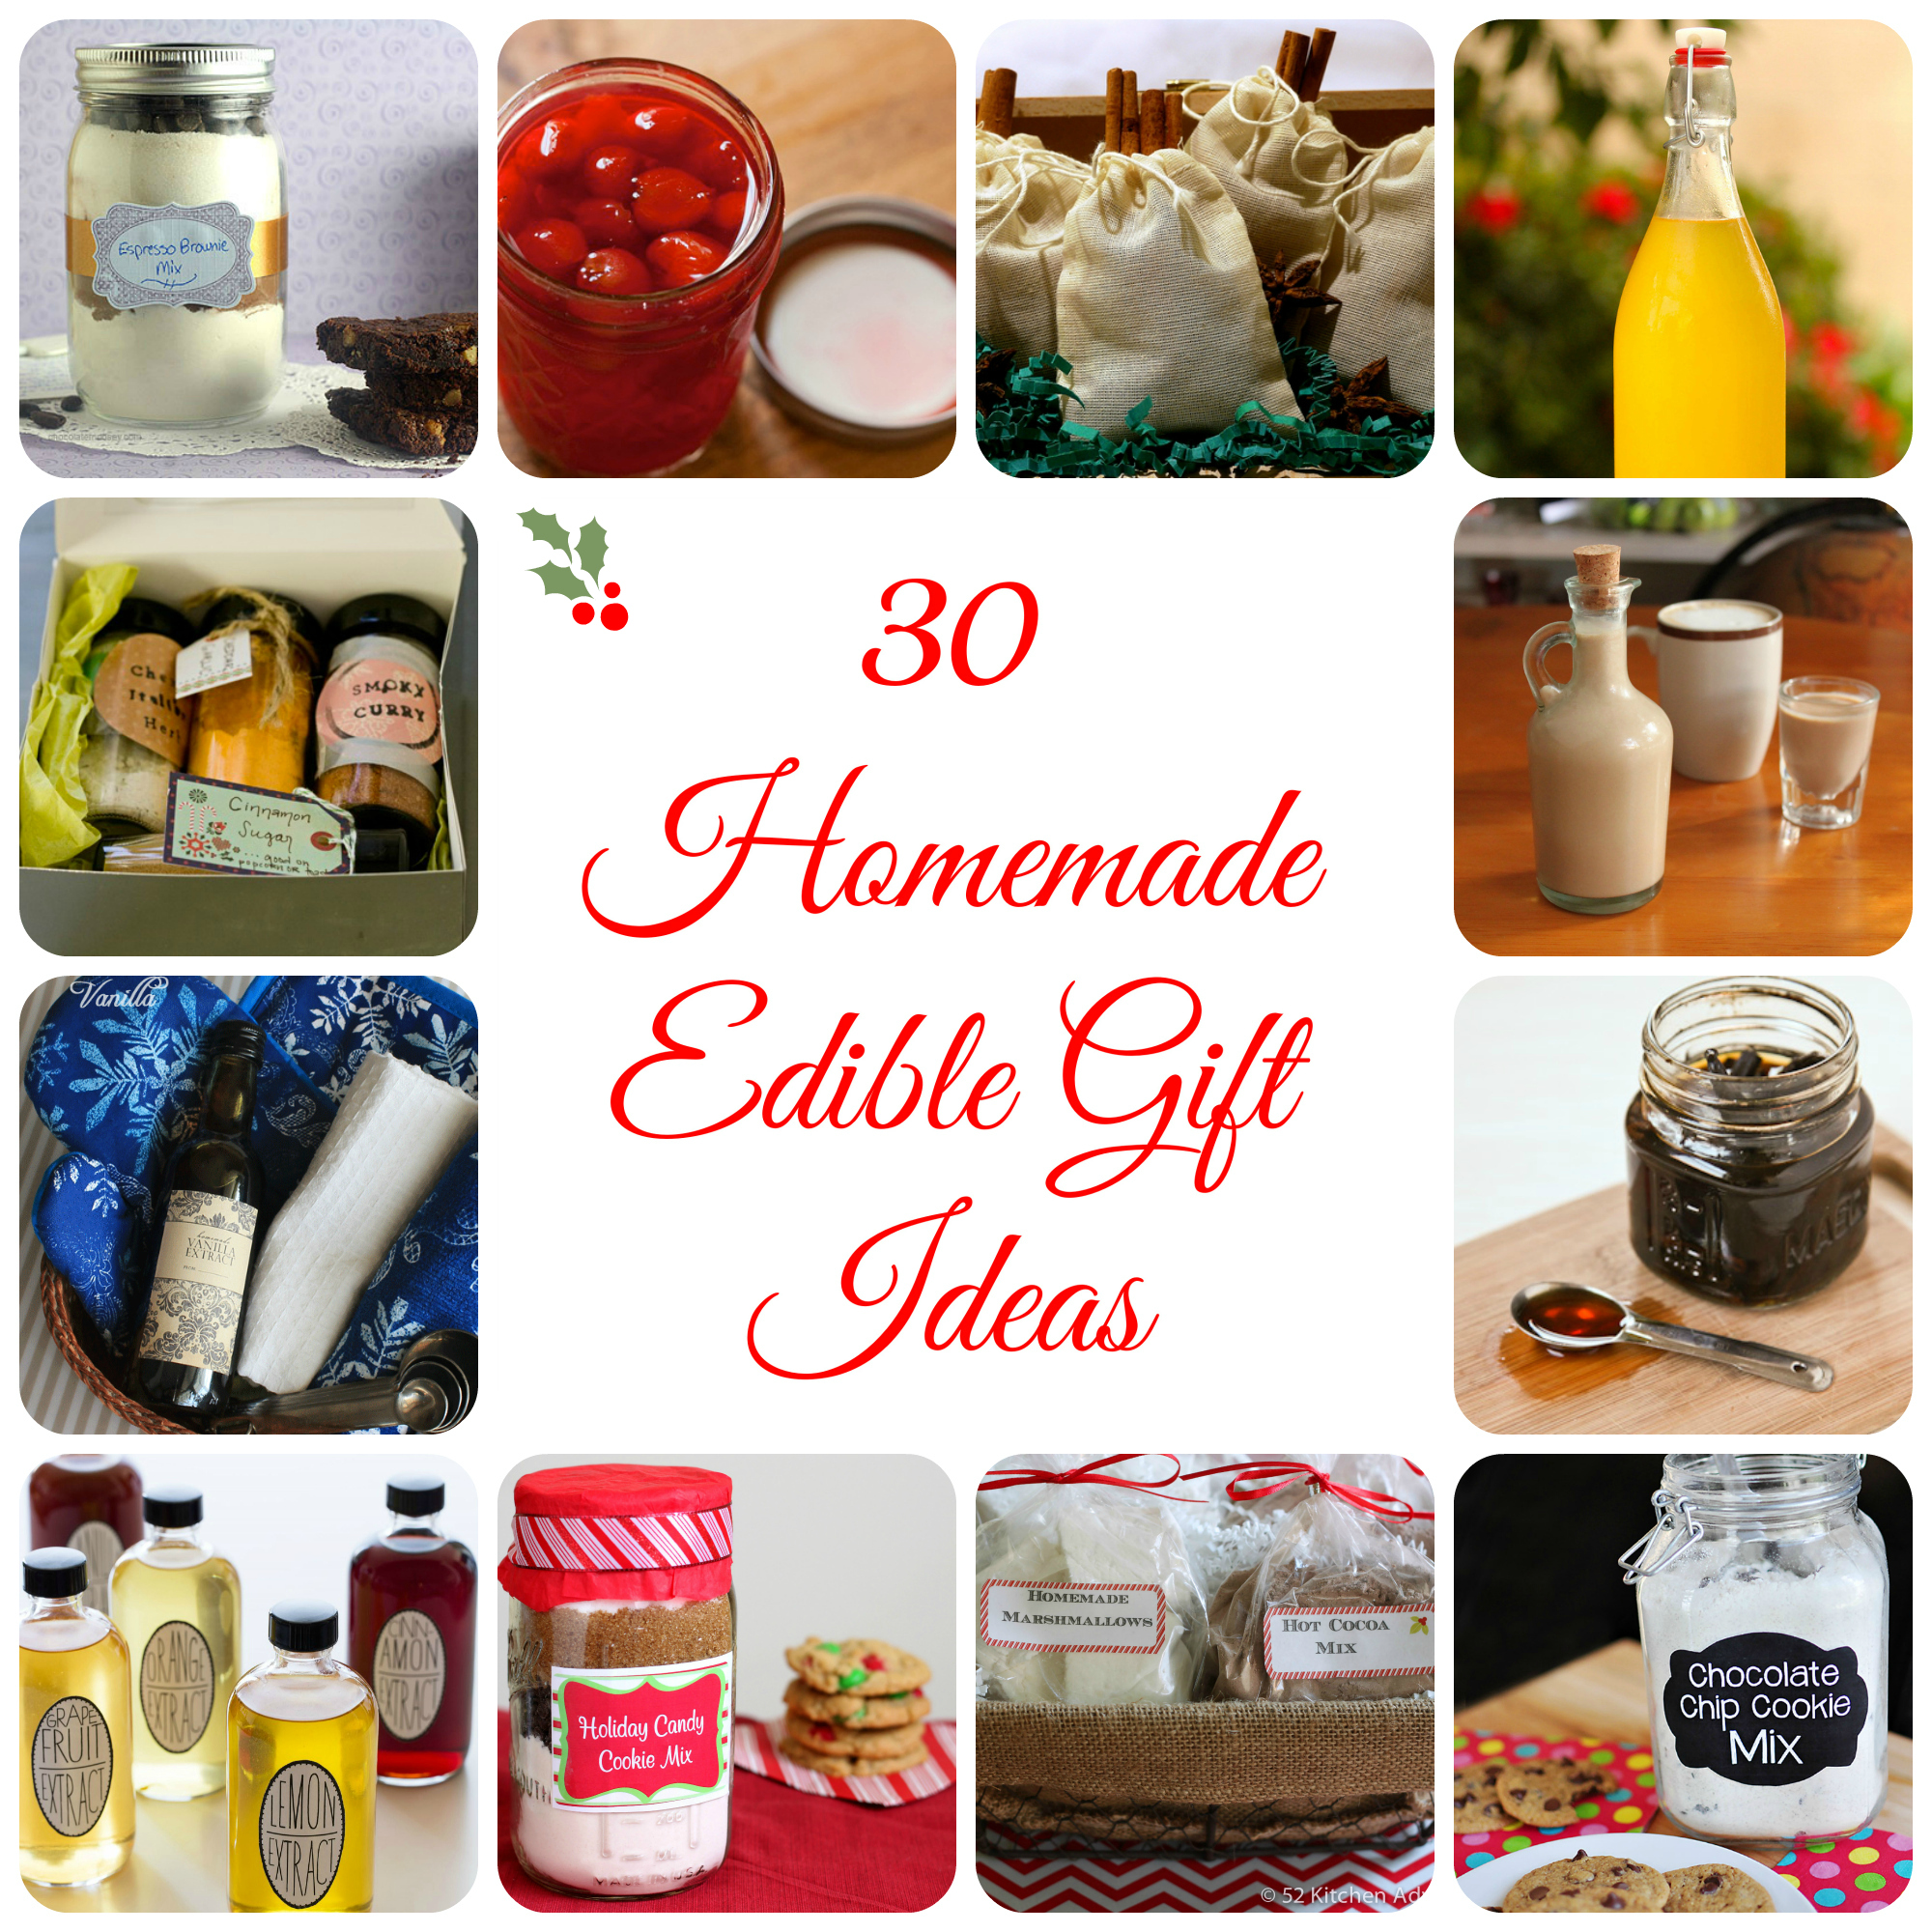 30 Homemade Edible Gift Ideas